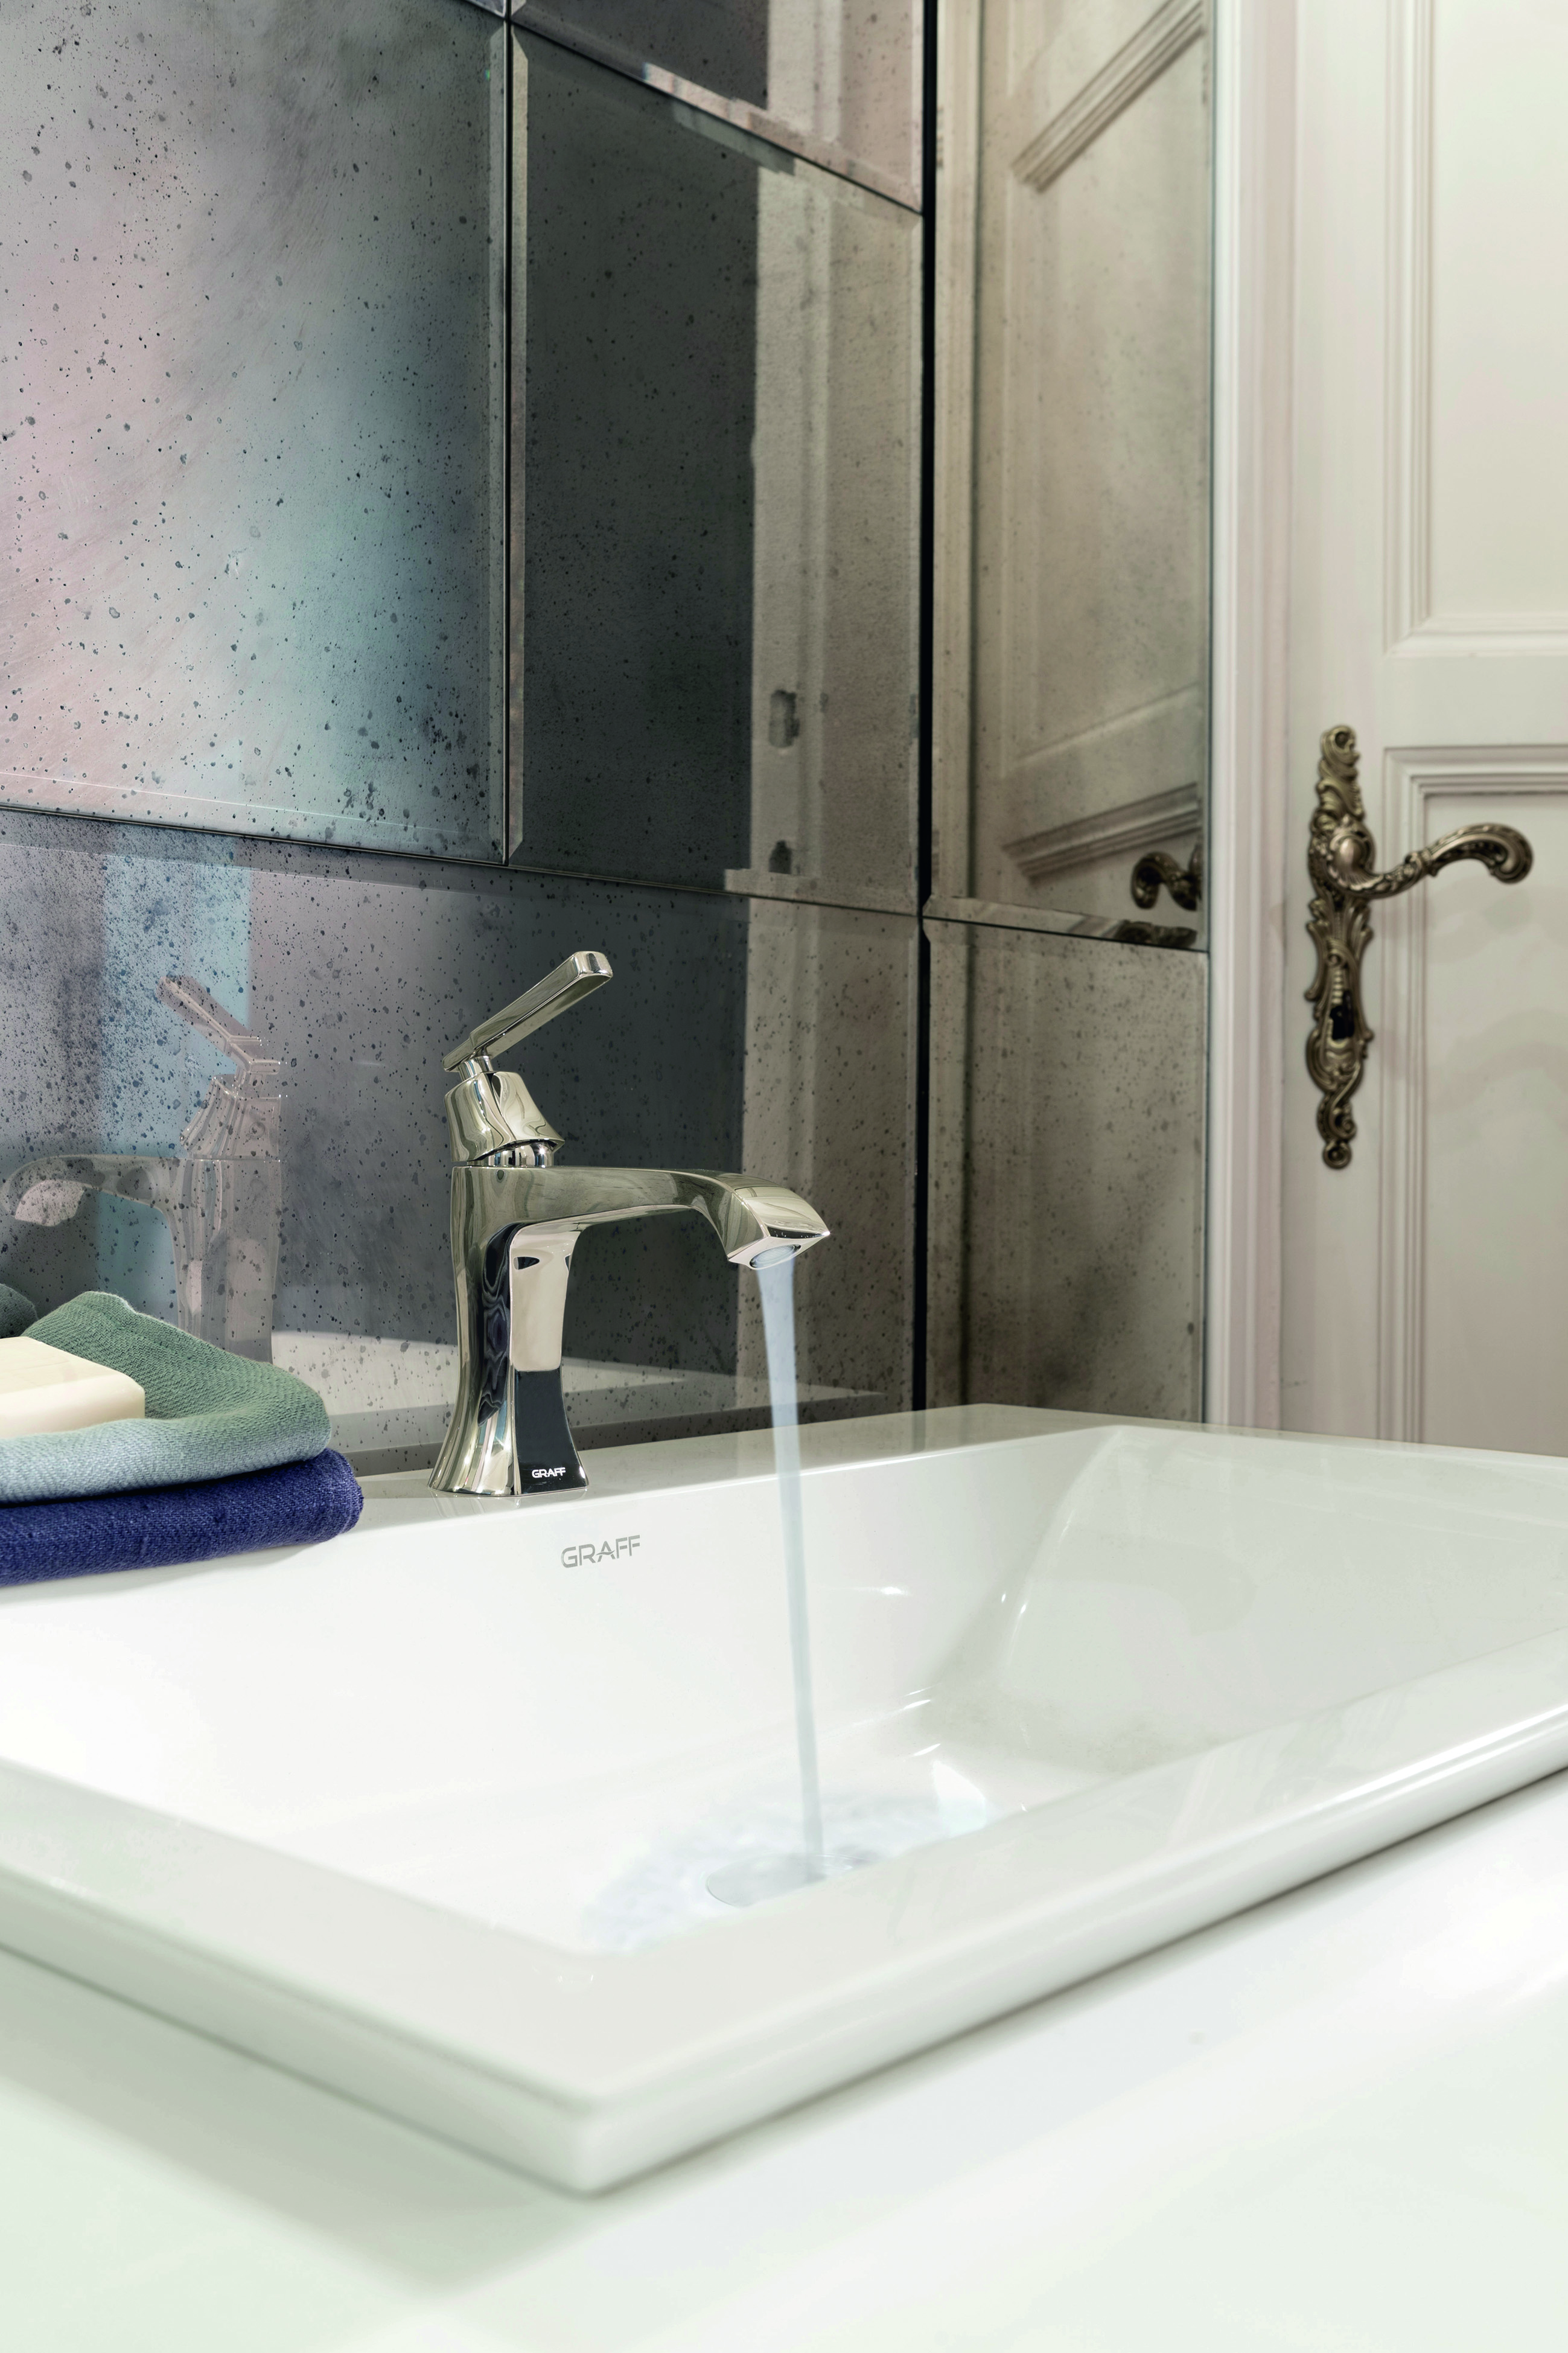 FINEZZA Debuts as the New Faucet Collection by GRAFF. Contemporary Bathroom Designs    GRAFF